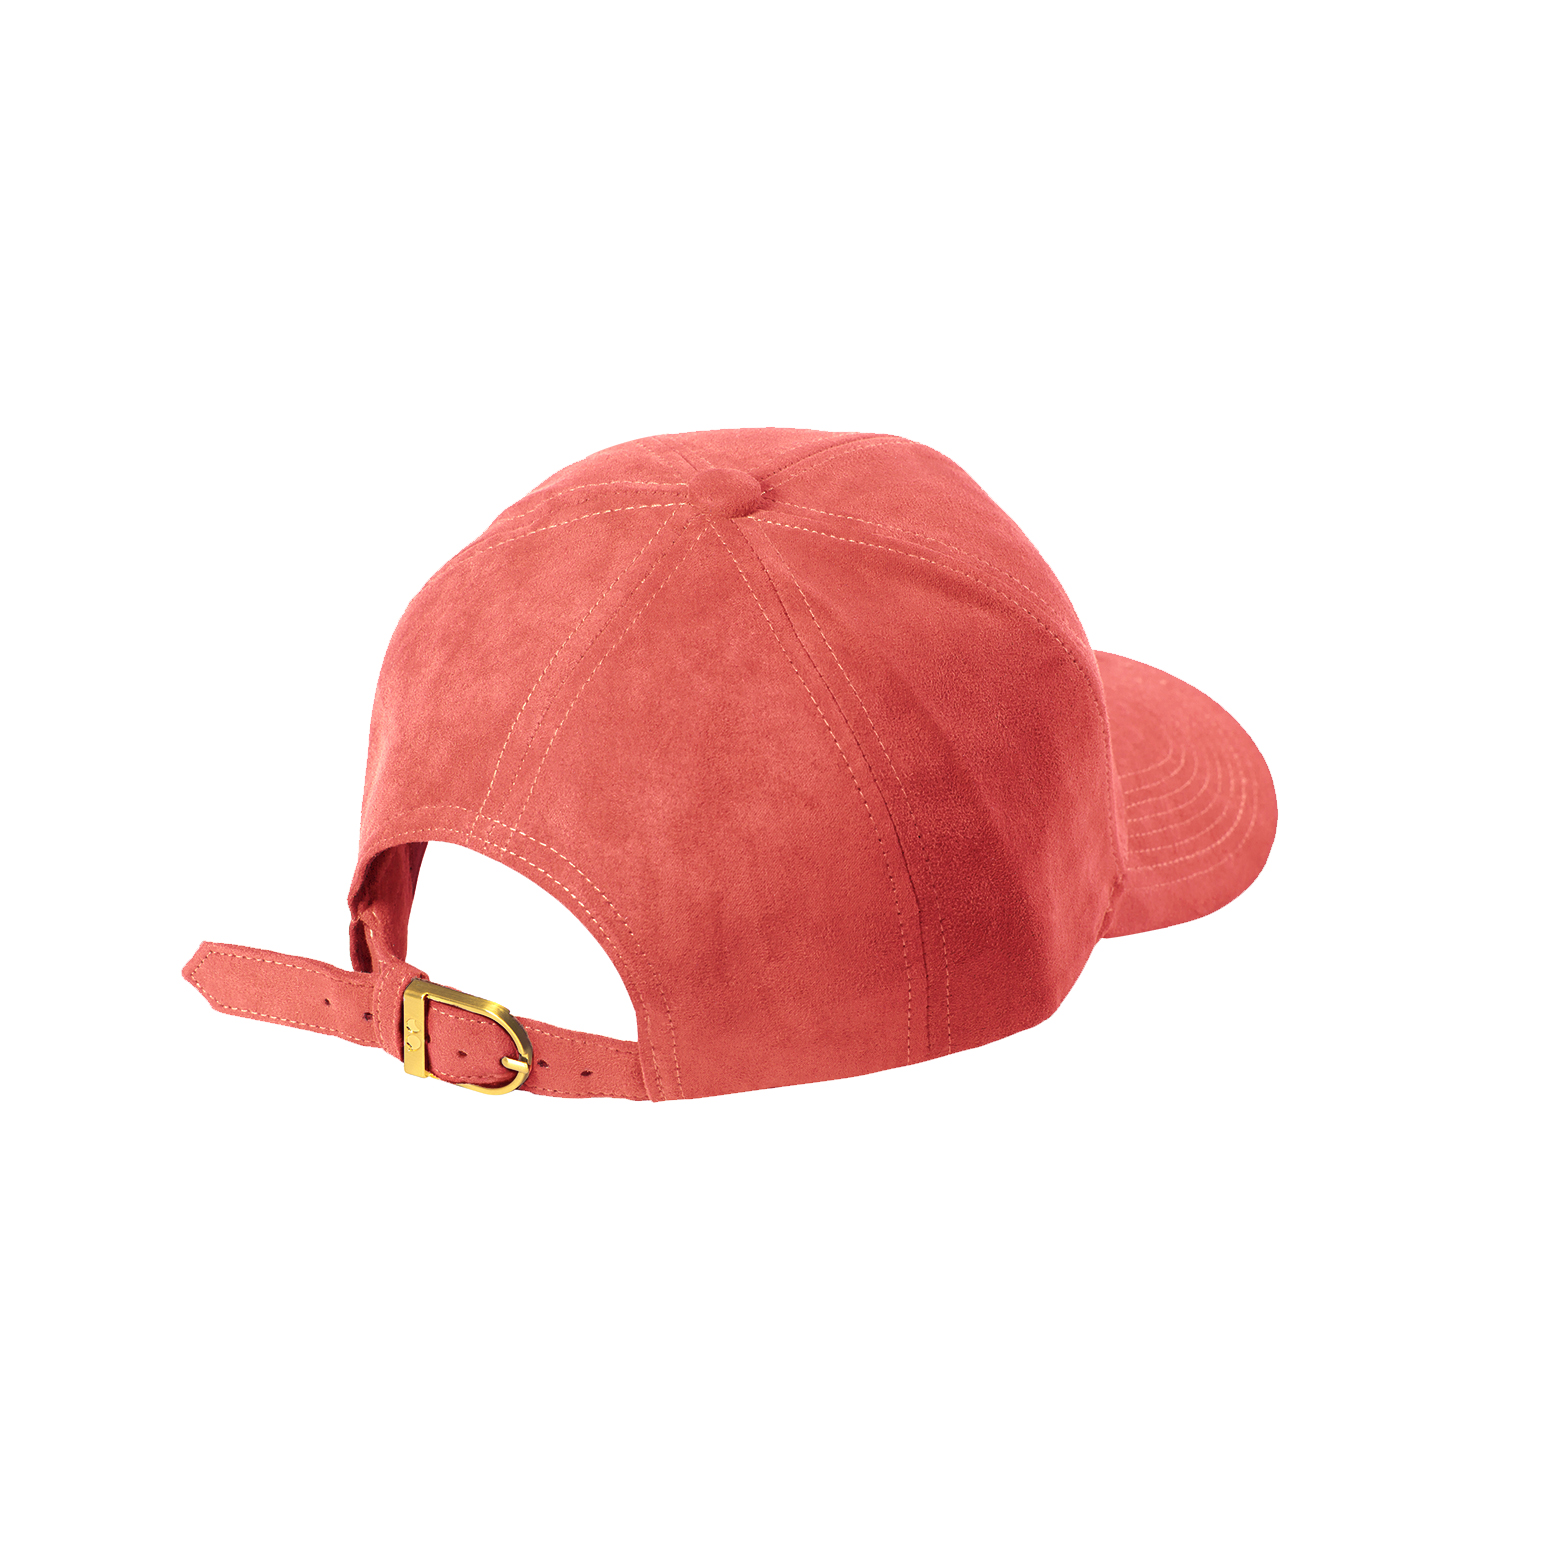 BASEBALL CAP PEACH SUEDE GOLD BACK SIDE